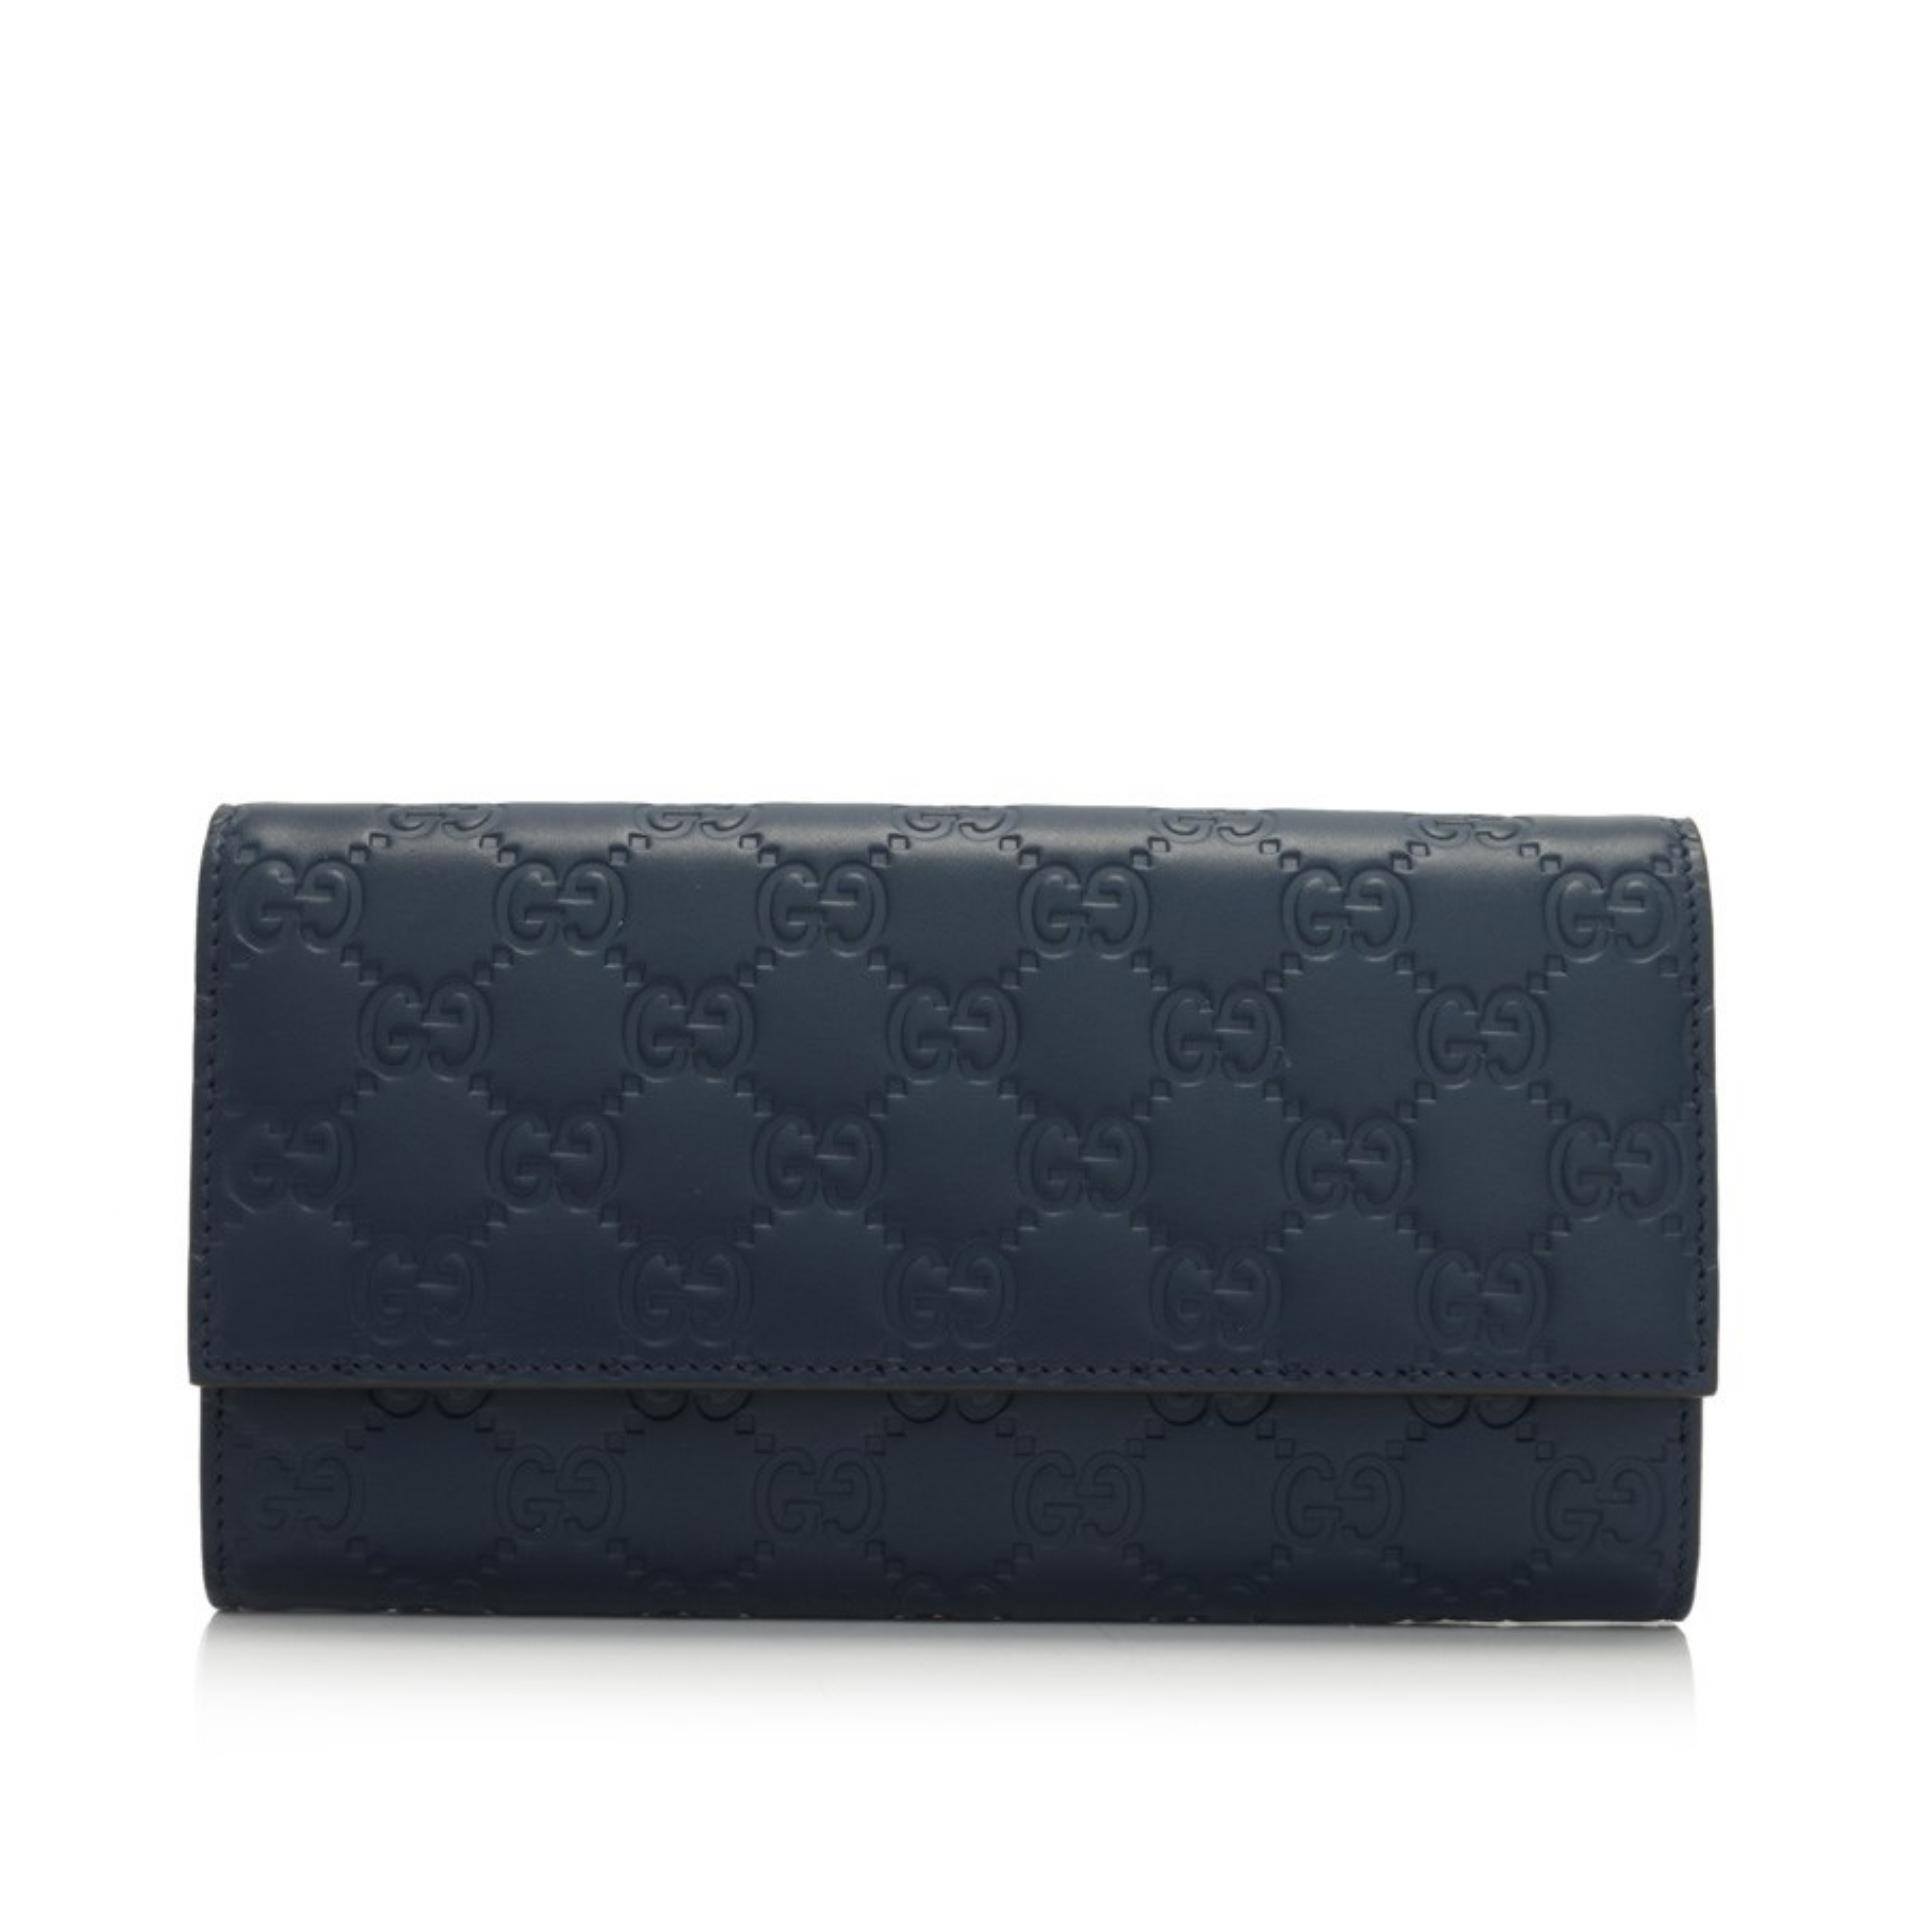 c8ee47ced89 Gucci Signature Continental Wallet (Dark Blue)   410100CWC1G4157